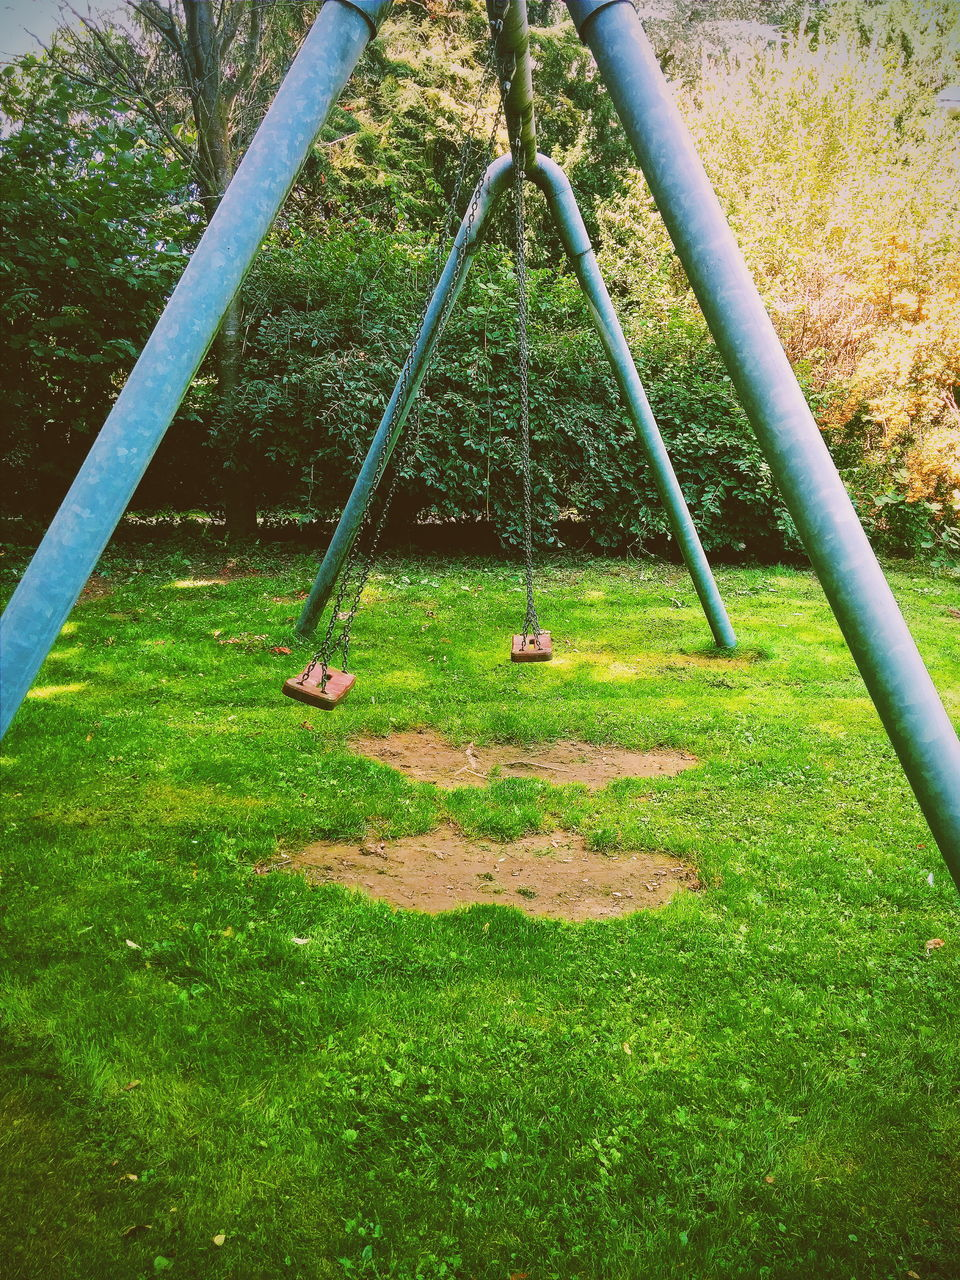 View Of Swing In Park